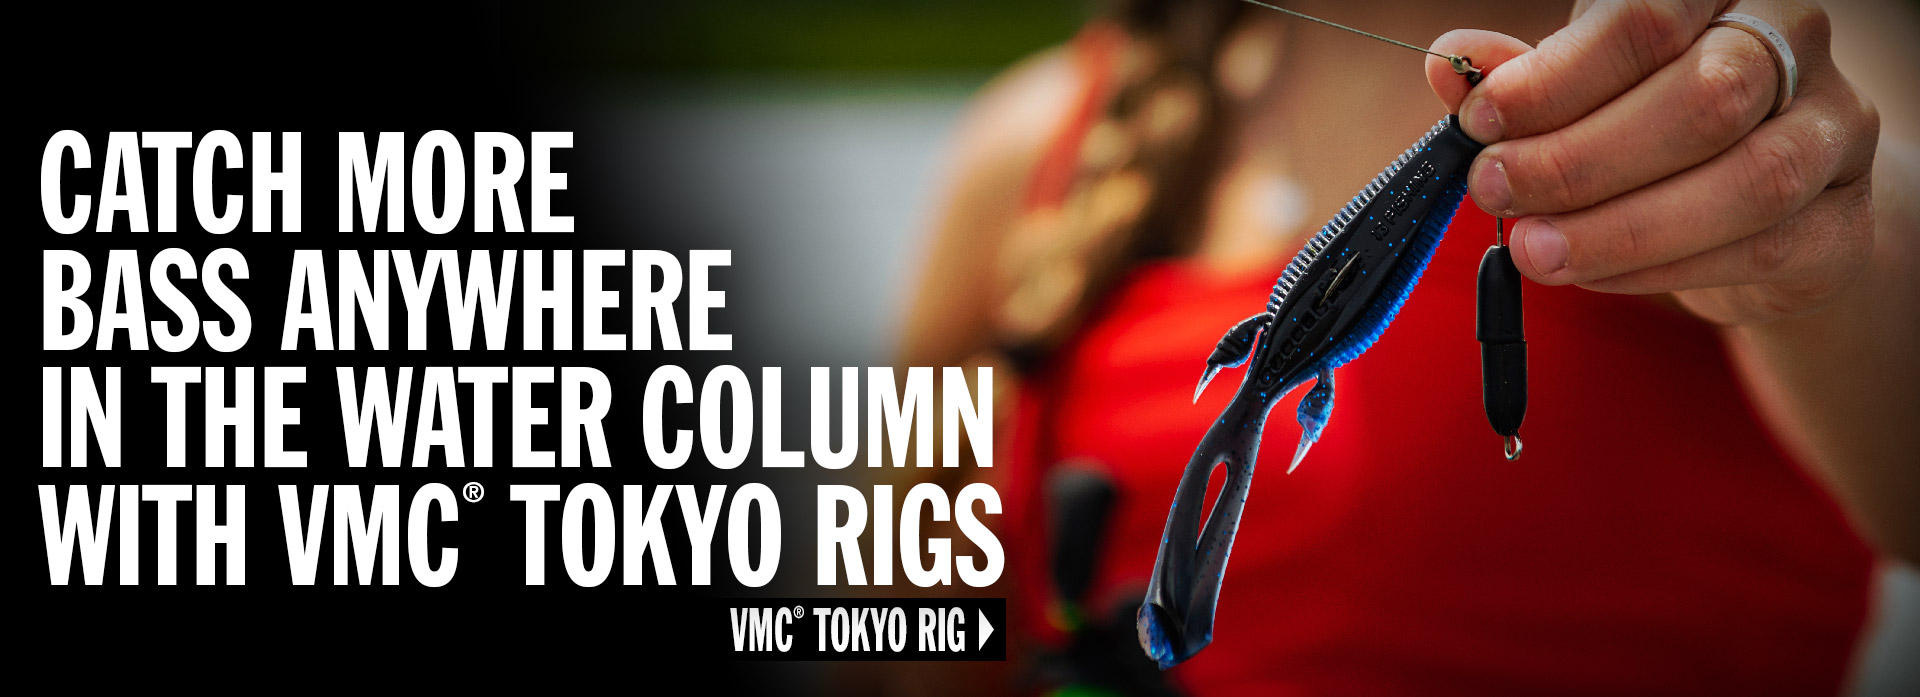 CATCH MORE BASS ANYWHERE IN THE WATER COLUMN WITH VMC® TOKYO RIGS